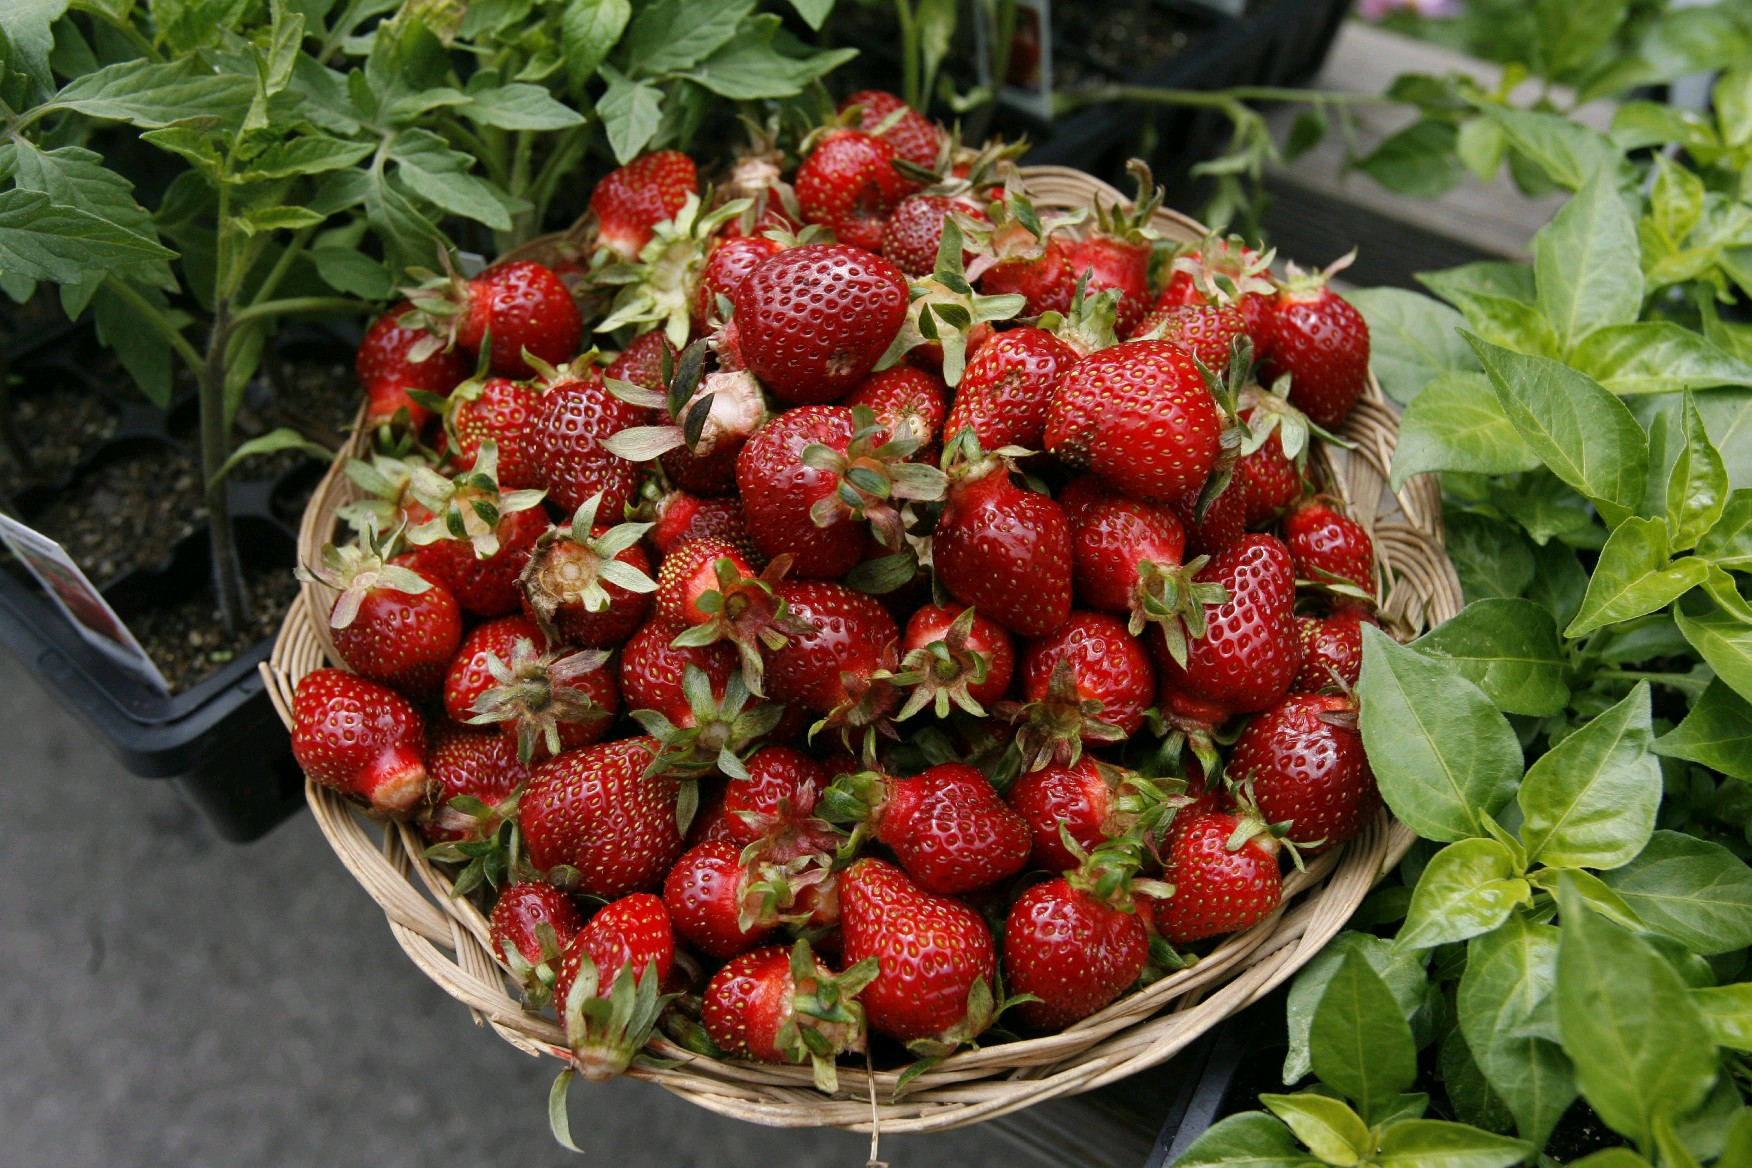 Strawberries were swapped for french fries on the Silver Diner children's menu and became a big hit. (Buffalo News file photo)